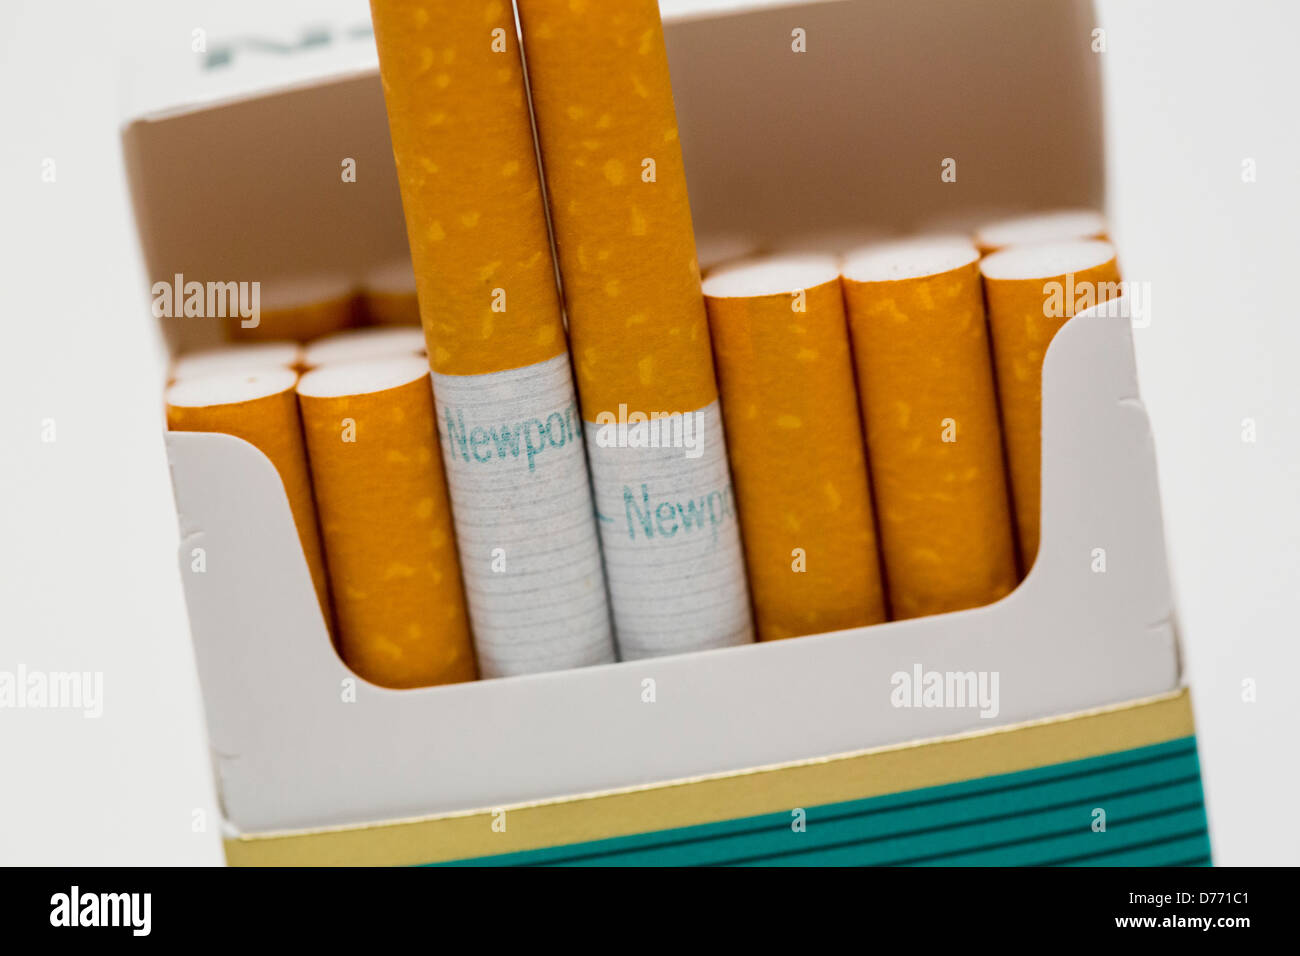 Carton of cigarettes Marlboro in Arkansas